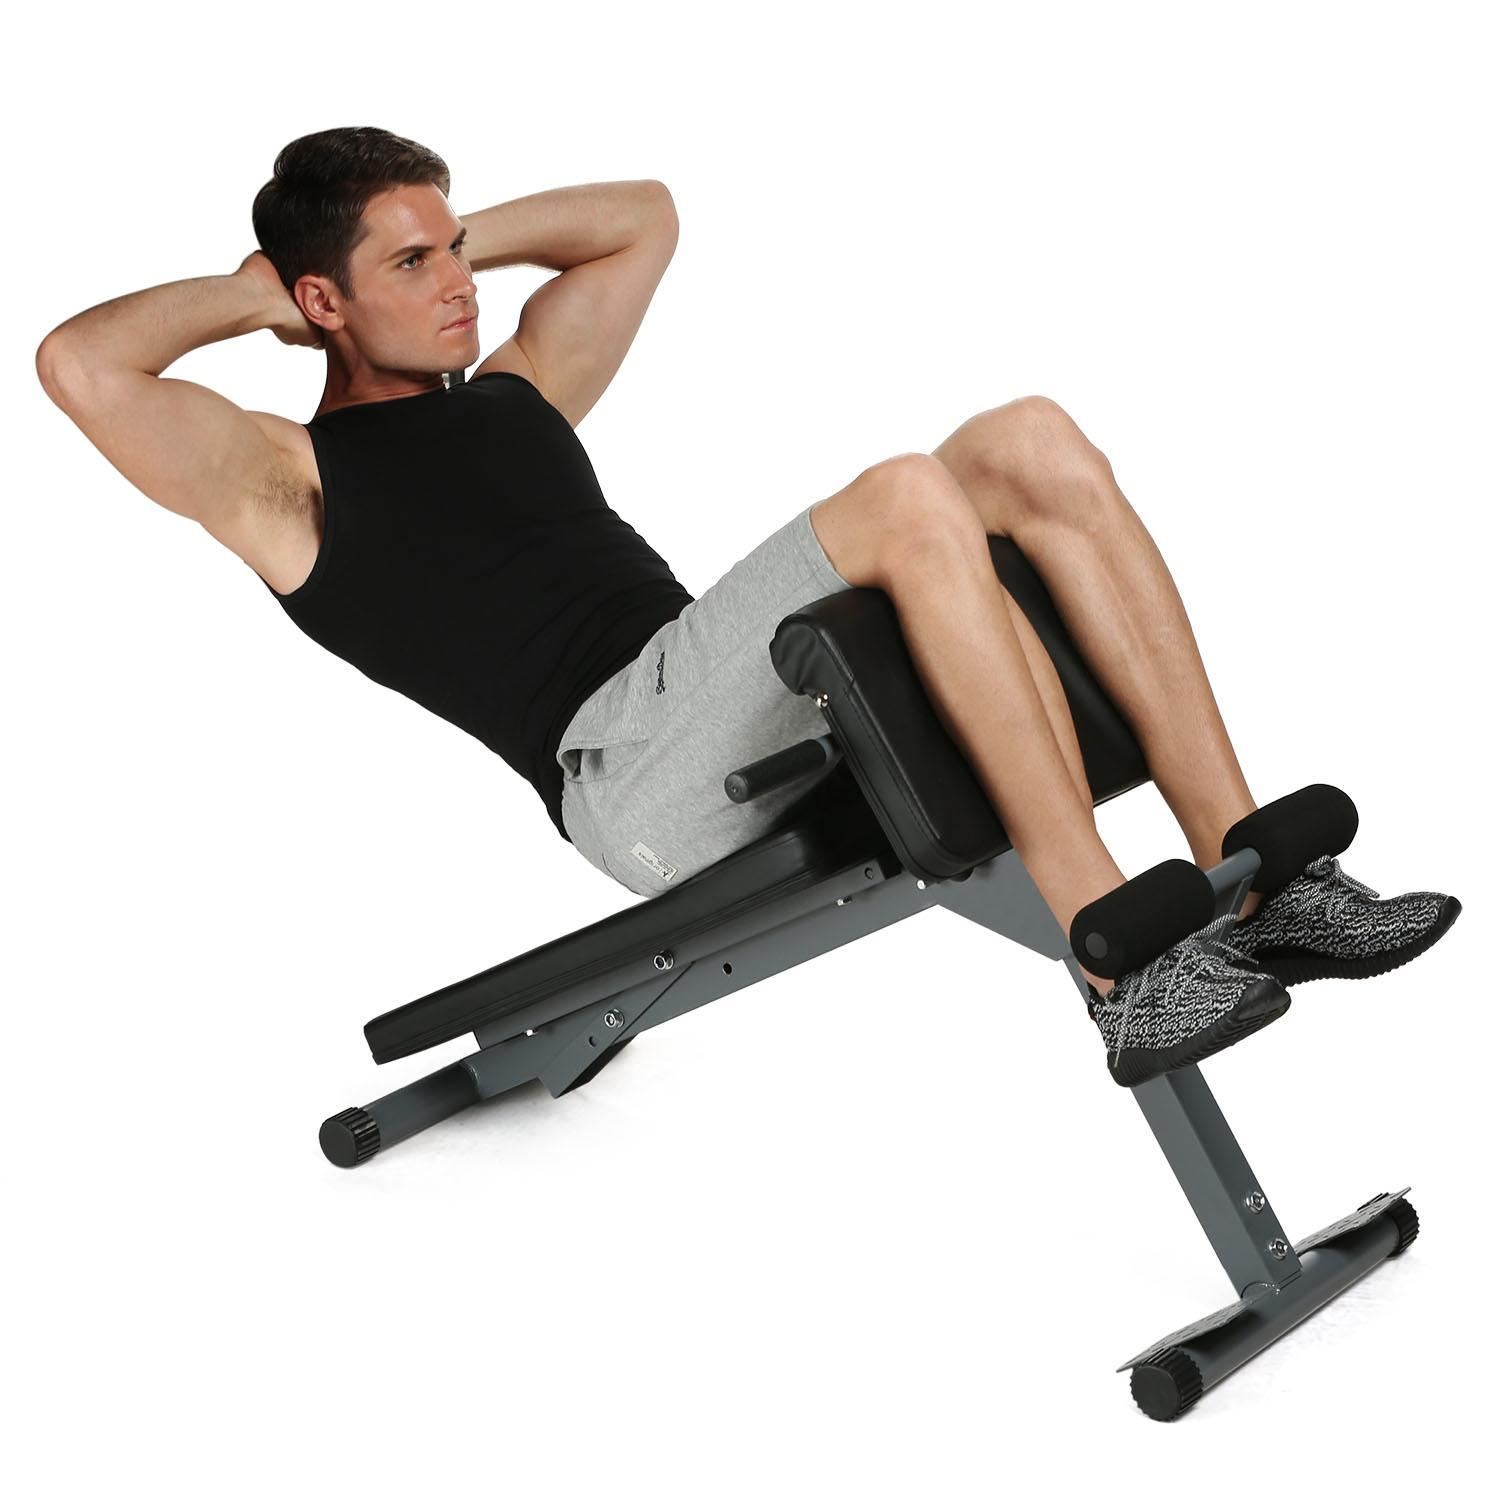 Hifashion Roman Chair Hyperextension Bench Sit Up Bench Abdominal Exercise Home Gym Fitness Workout Equipment HFON  sc 1 st  Walmart & Hifashion Roman Chair Hyperextension Bench Sit Up Bench Abdominal ...